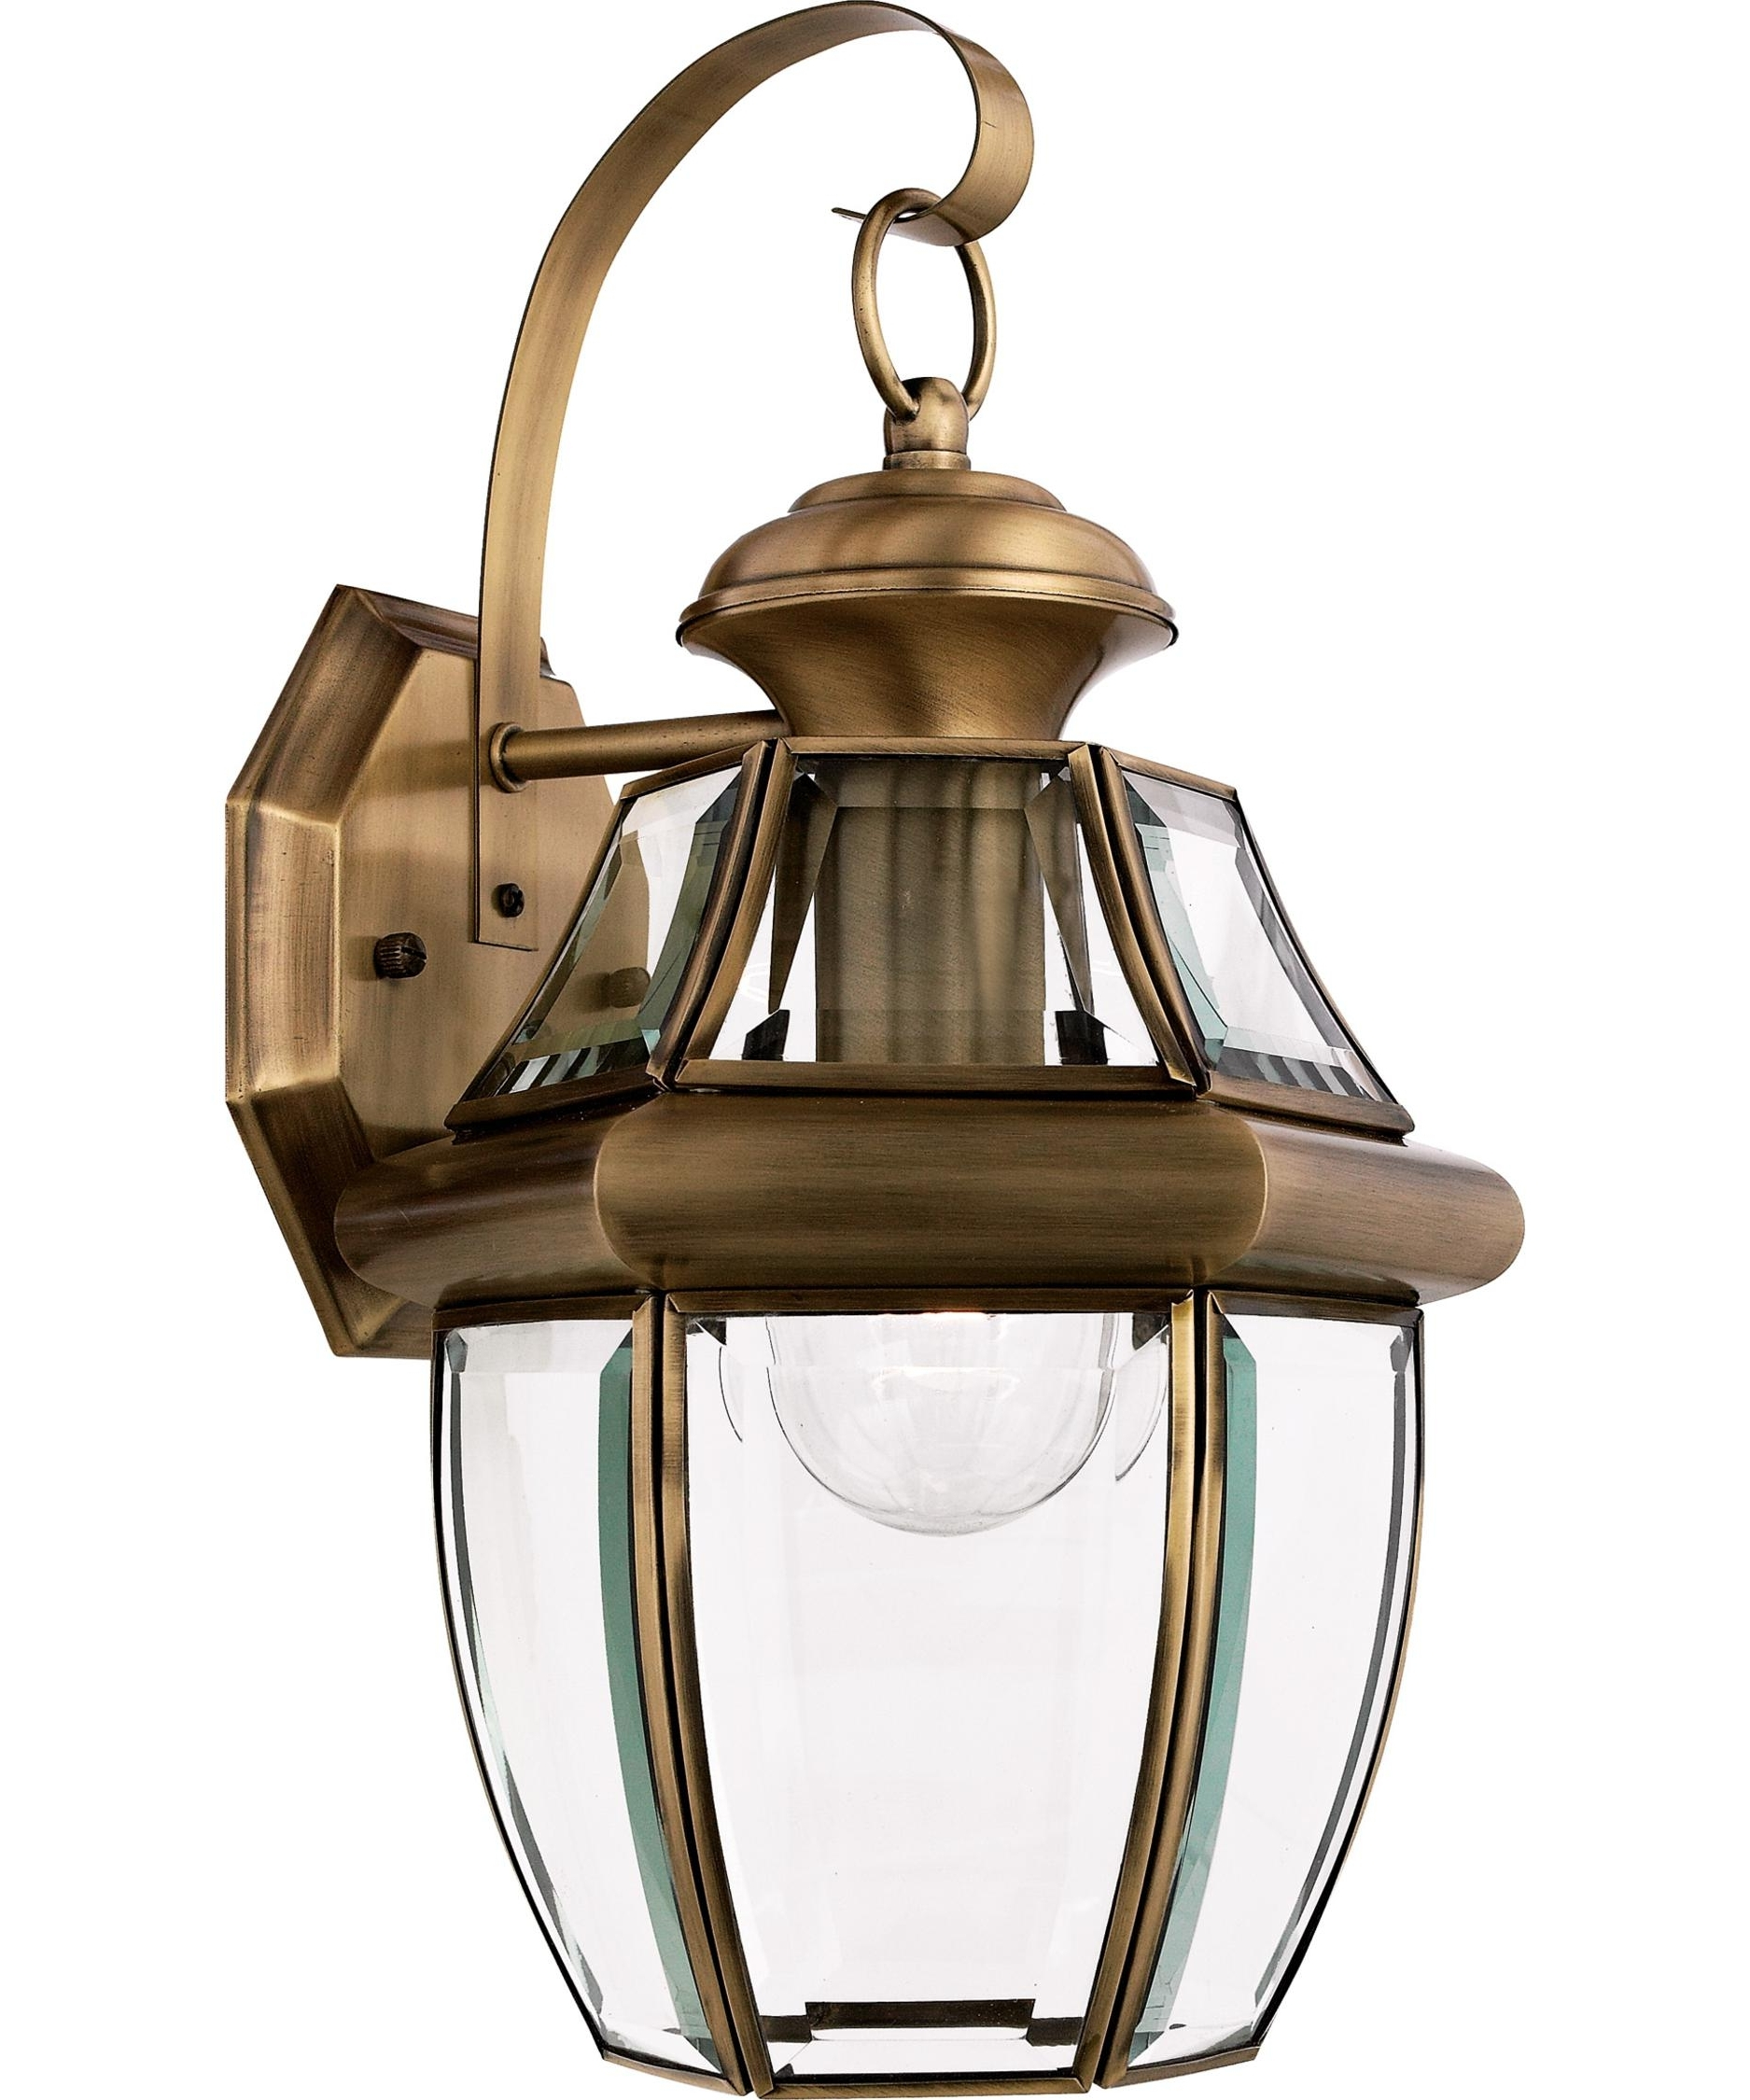 Quoizel Outdoor Wall Lighting Within Latest Quoizel Ny8316 Newbury 9 Inch Wide 1 Light Outdoor Wall Light (View 13 of 20)